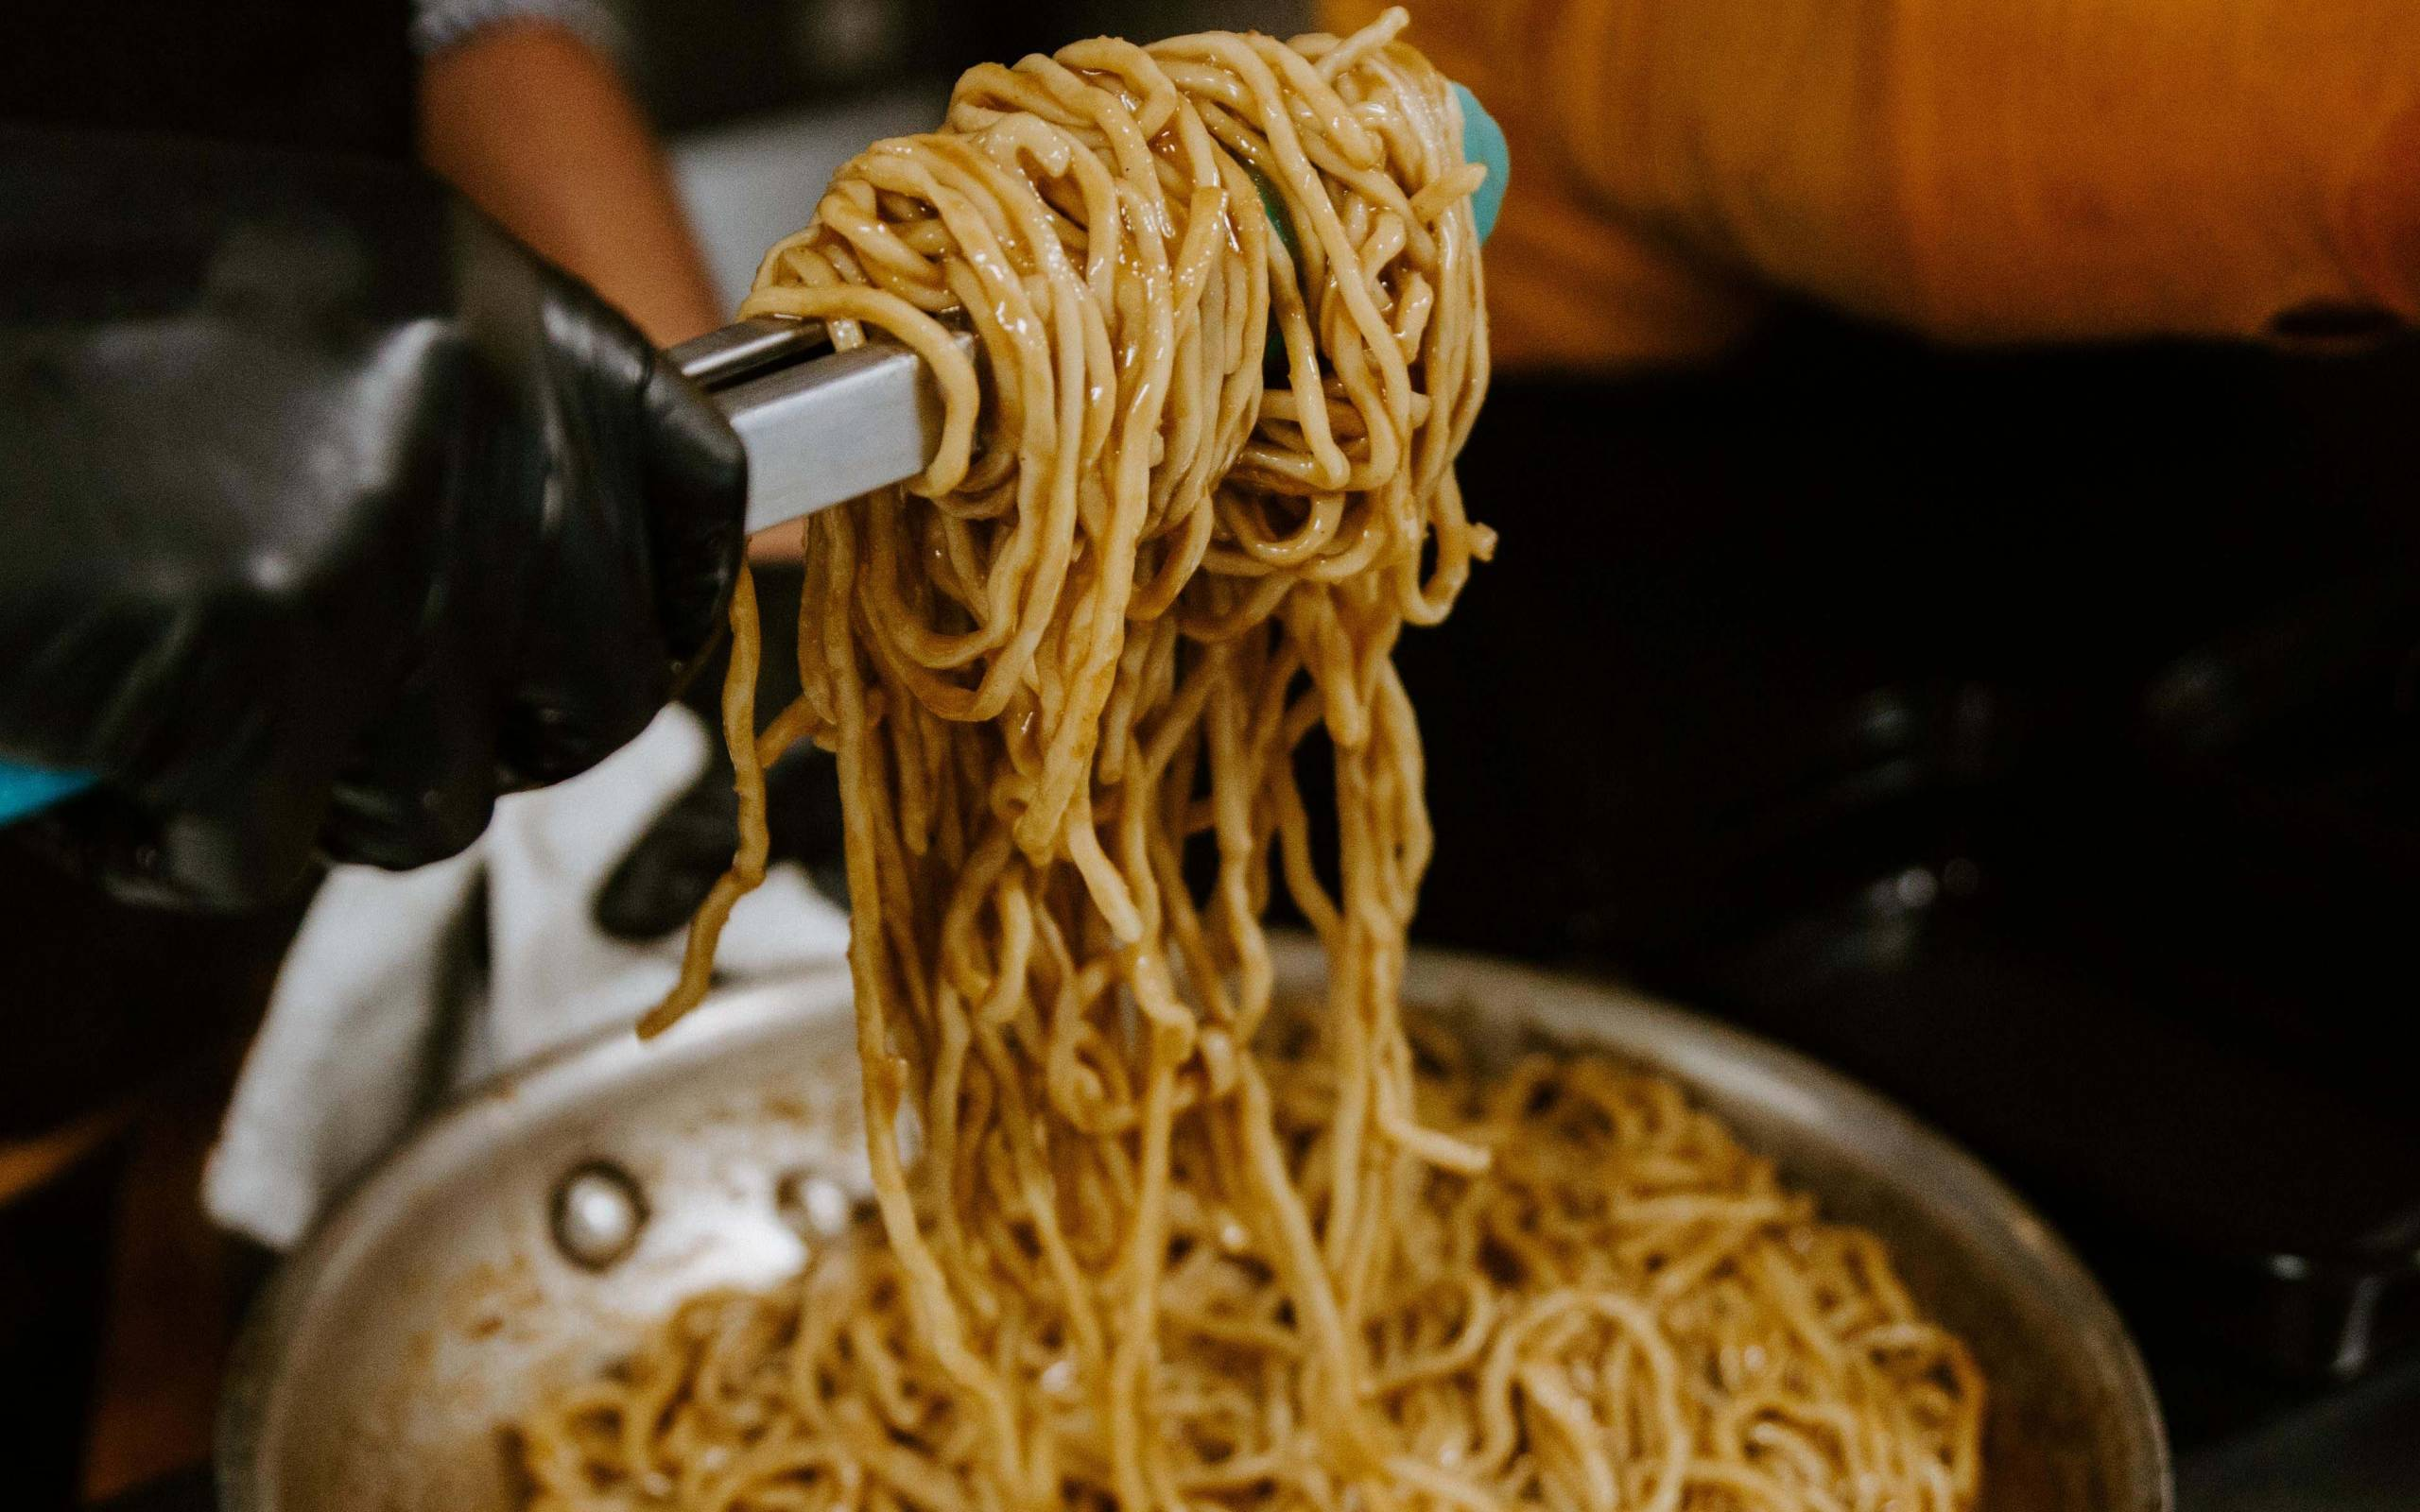 Saucy garlic noodles are mixed with a pair of tongs at Noodle Belly.